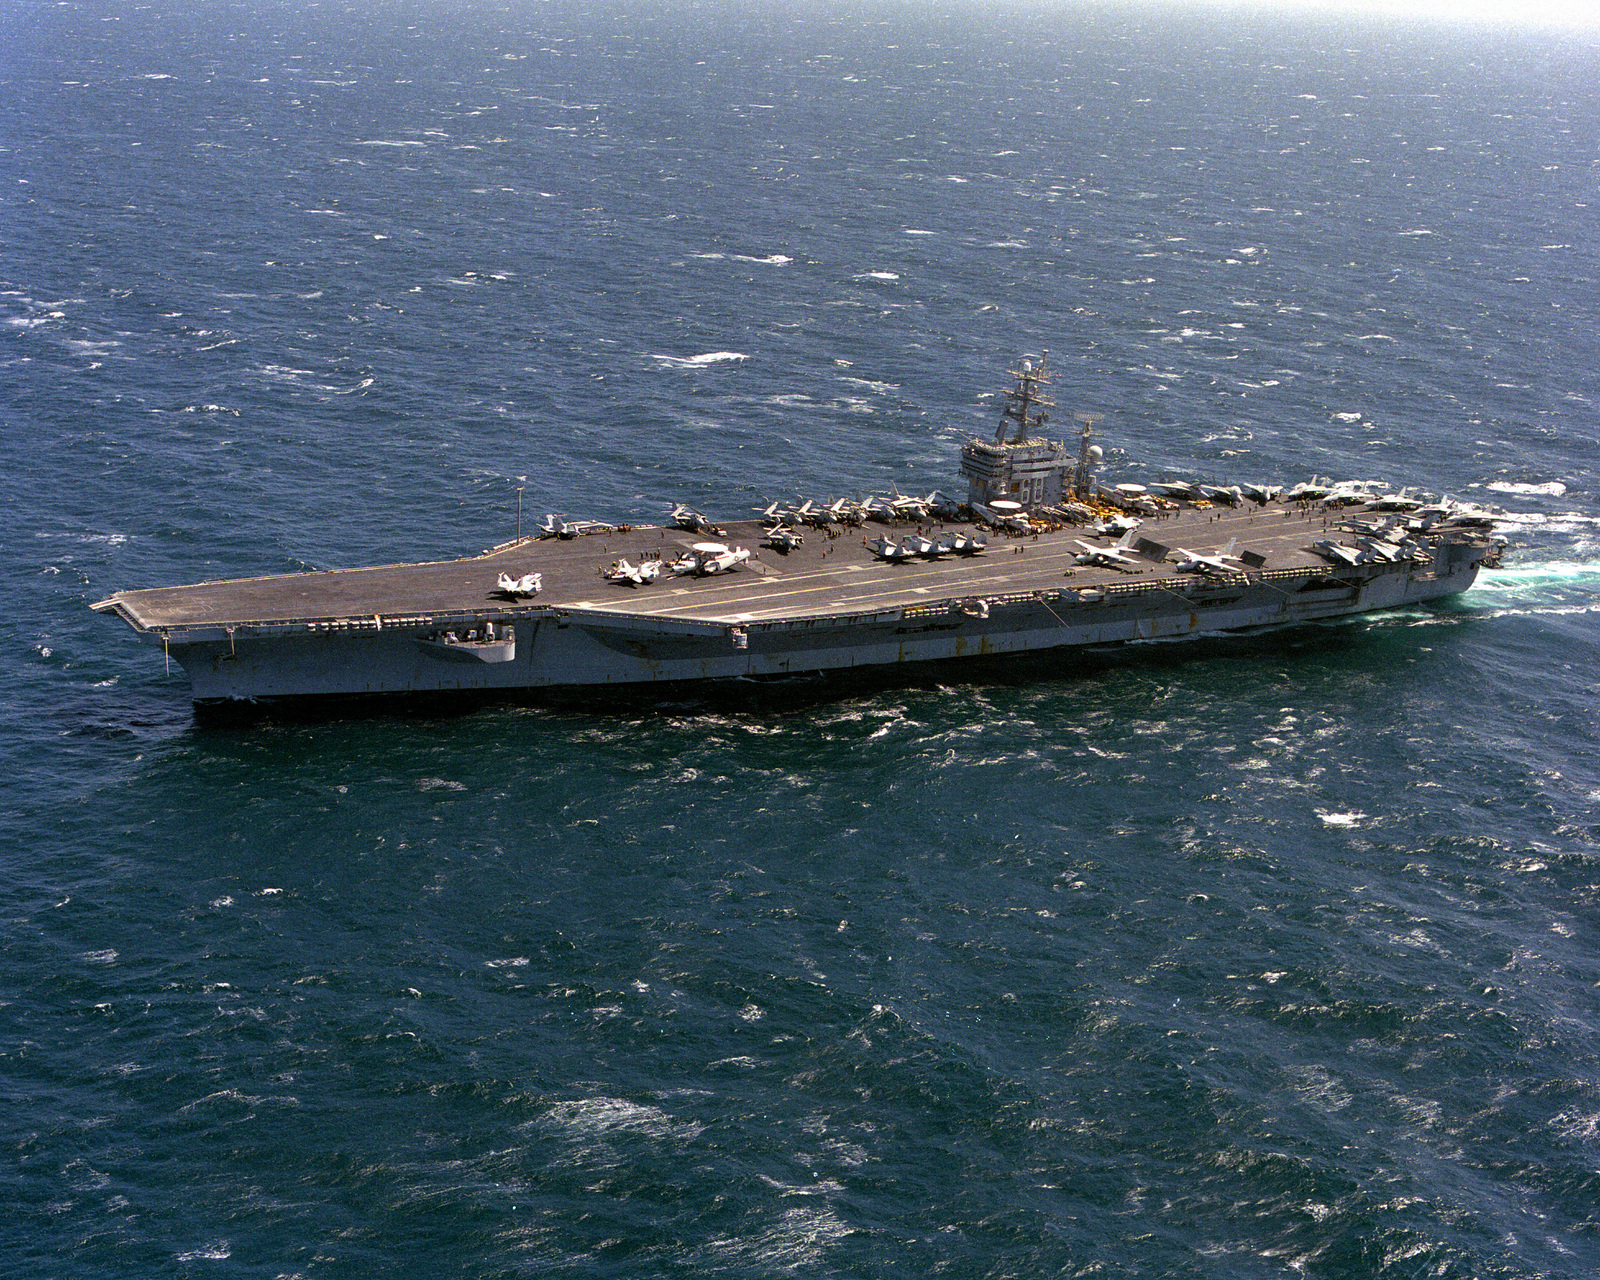 A port bow view of the nuclear-powered aircraft carrier USS